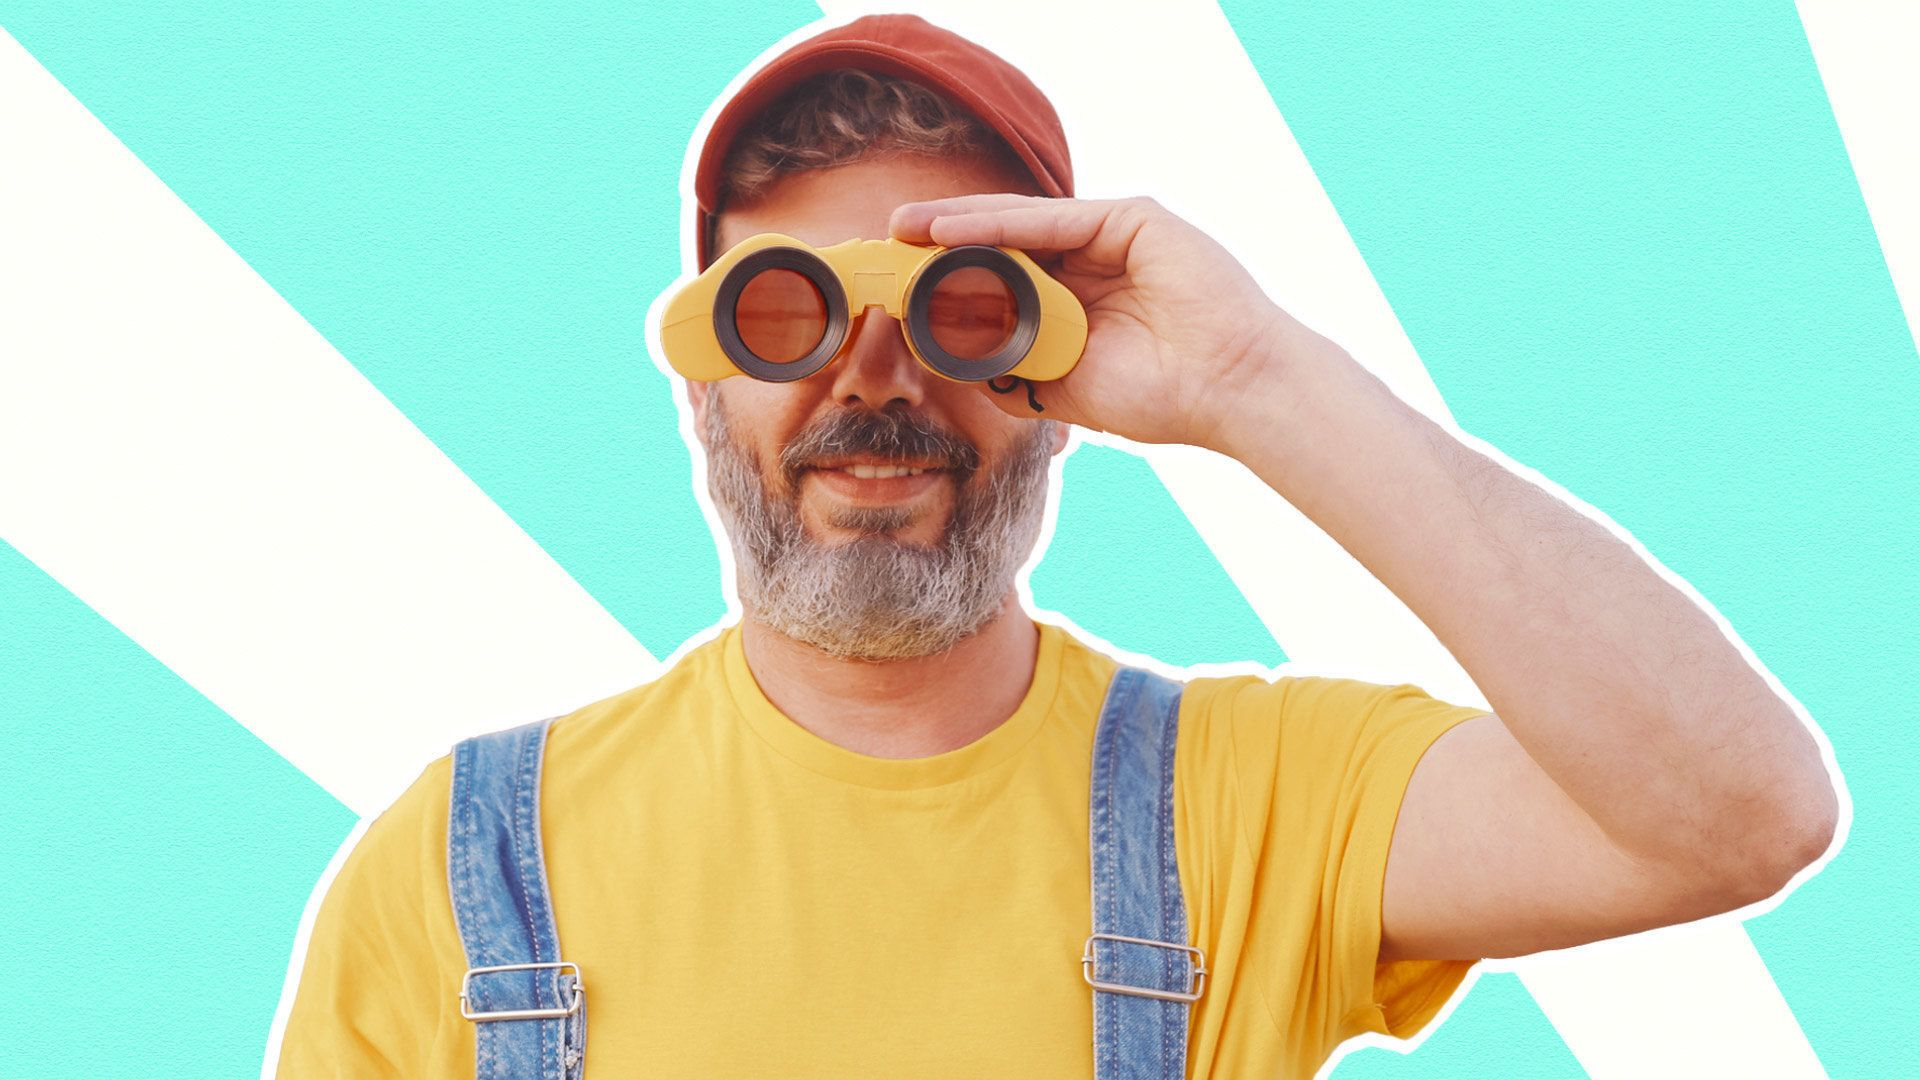 Man with binoculars and a hat looks forward